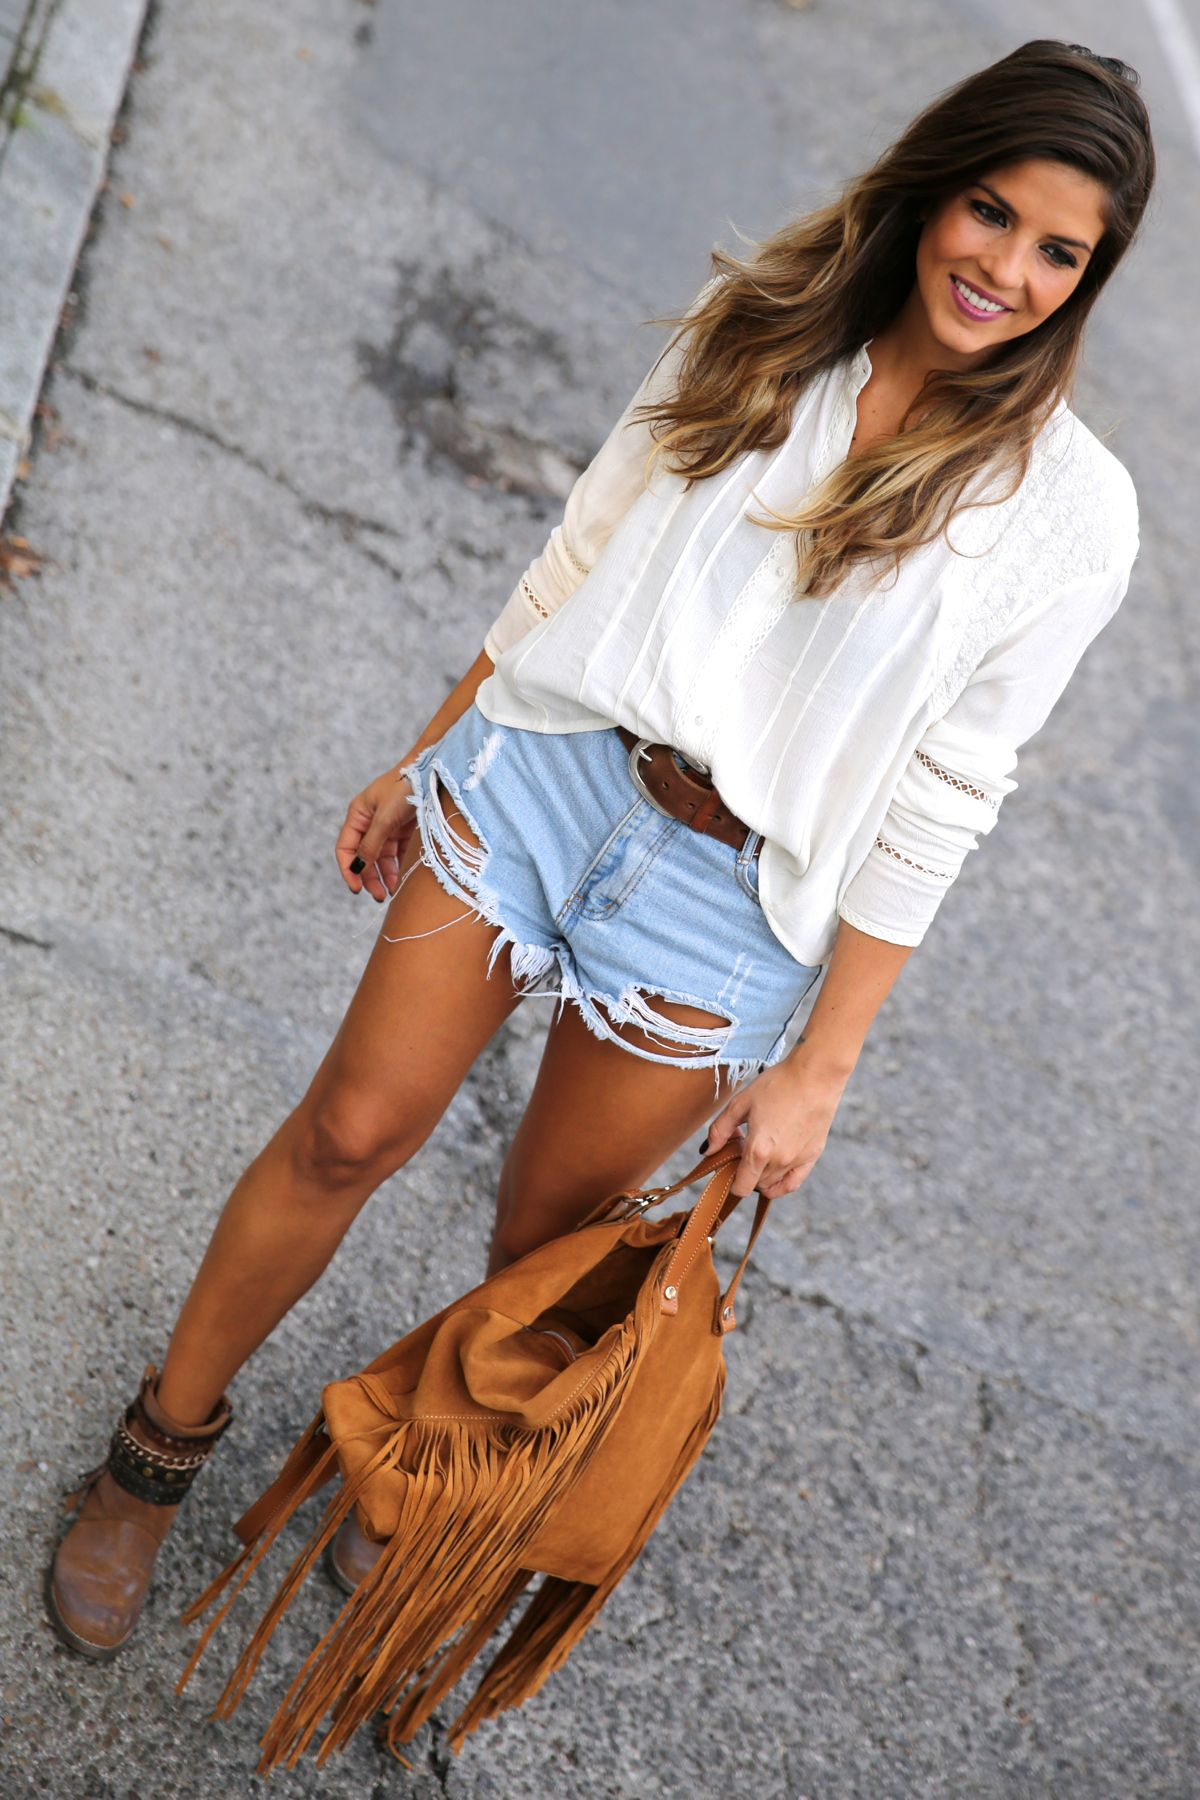 trendy_taste-look-outfit-street_style-ootd-blog-blogger-fashion_spain-moda_españa-boho-hippie-flecos-botines_camperos-cowboy_booties-mochila-backpack-blusa-camisa-denim-shorts-vaqueros-8